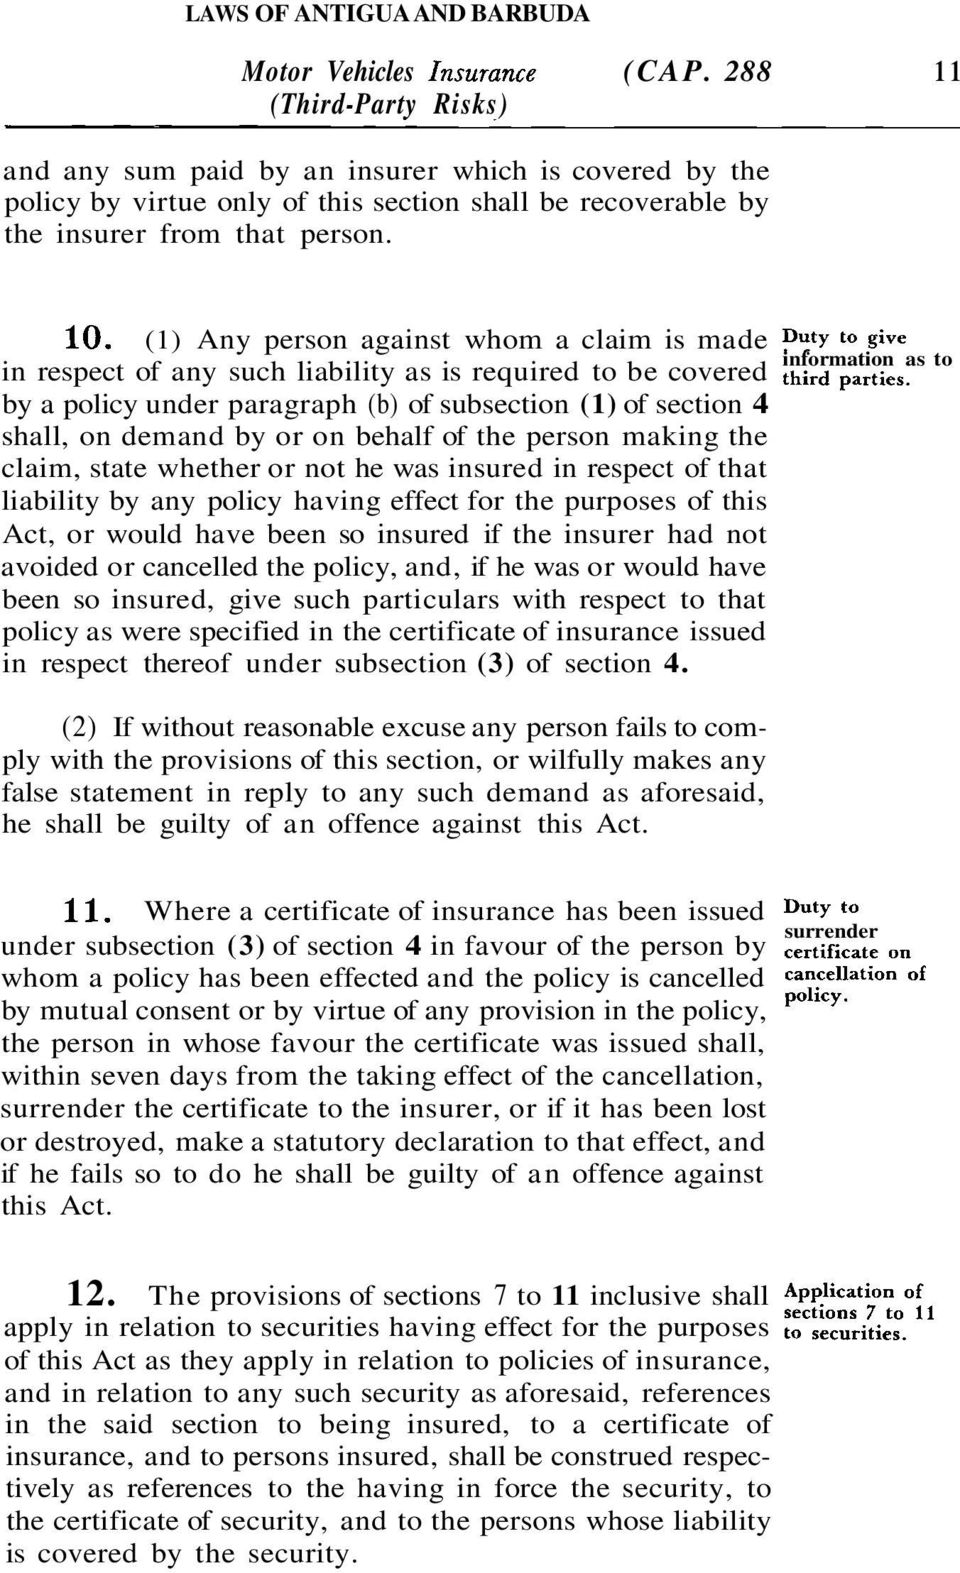 by a policy under paragraph (b) of subsection (1) of section 4 shall, on demand by or on behalf of the person making the claim, state whether or not he was insured in respect of that liability by any